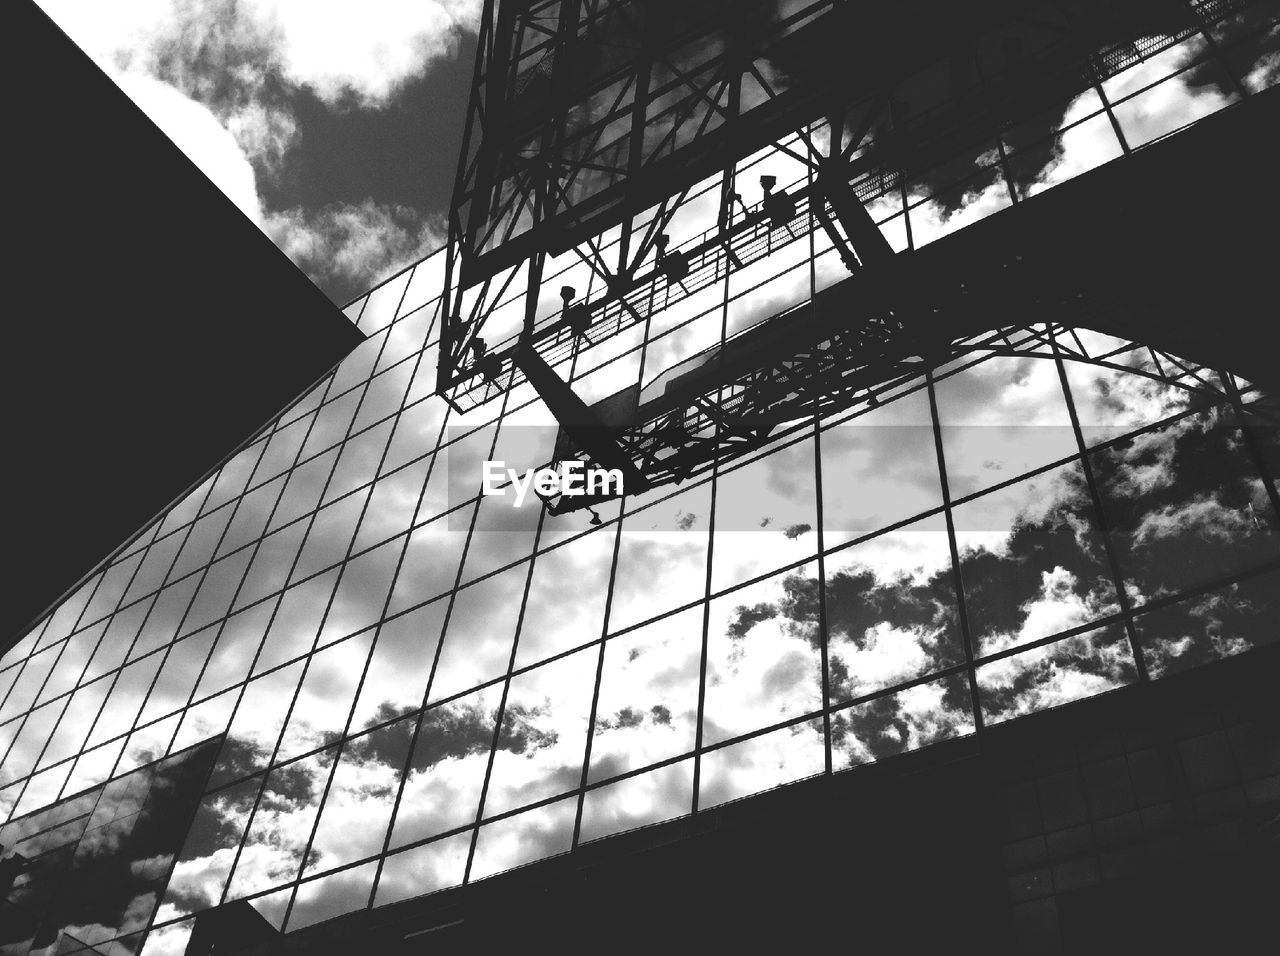 architecture, low angle view, building exterior, built structure, day, reflection, window, modern, silhouette, outdoors, window washer, sky, city, tree, no people